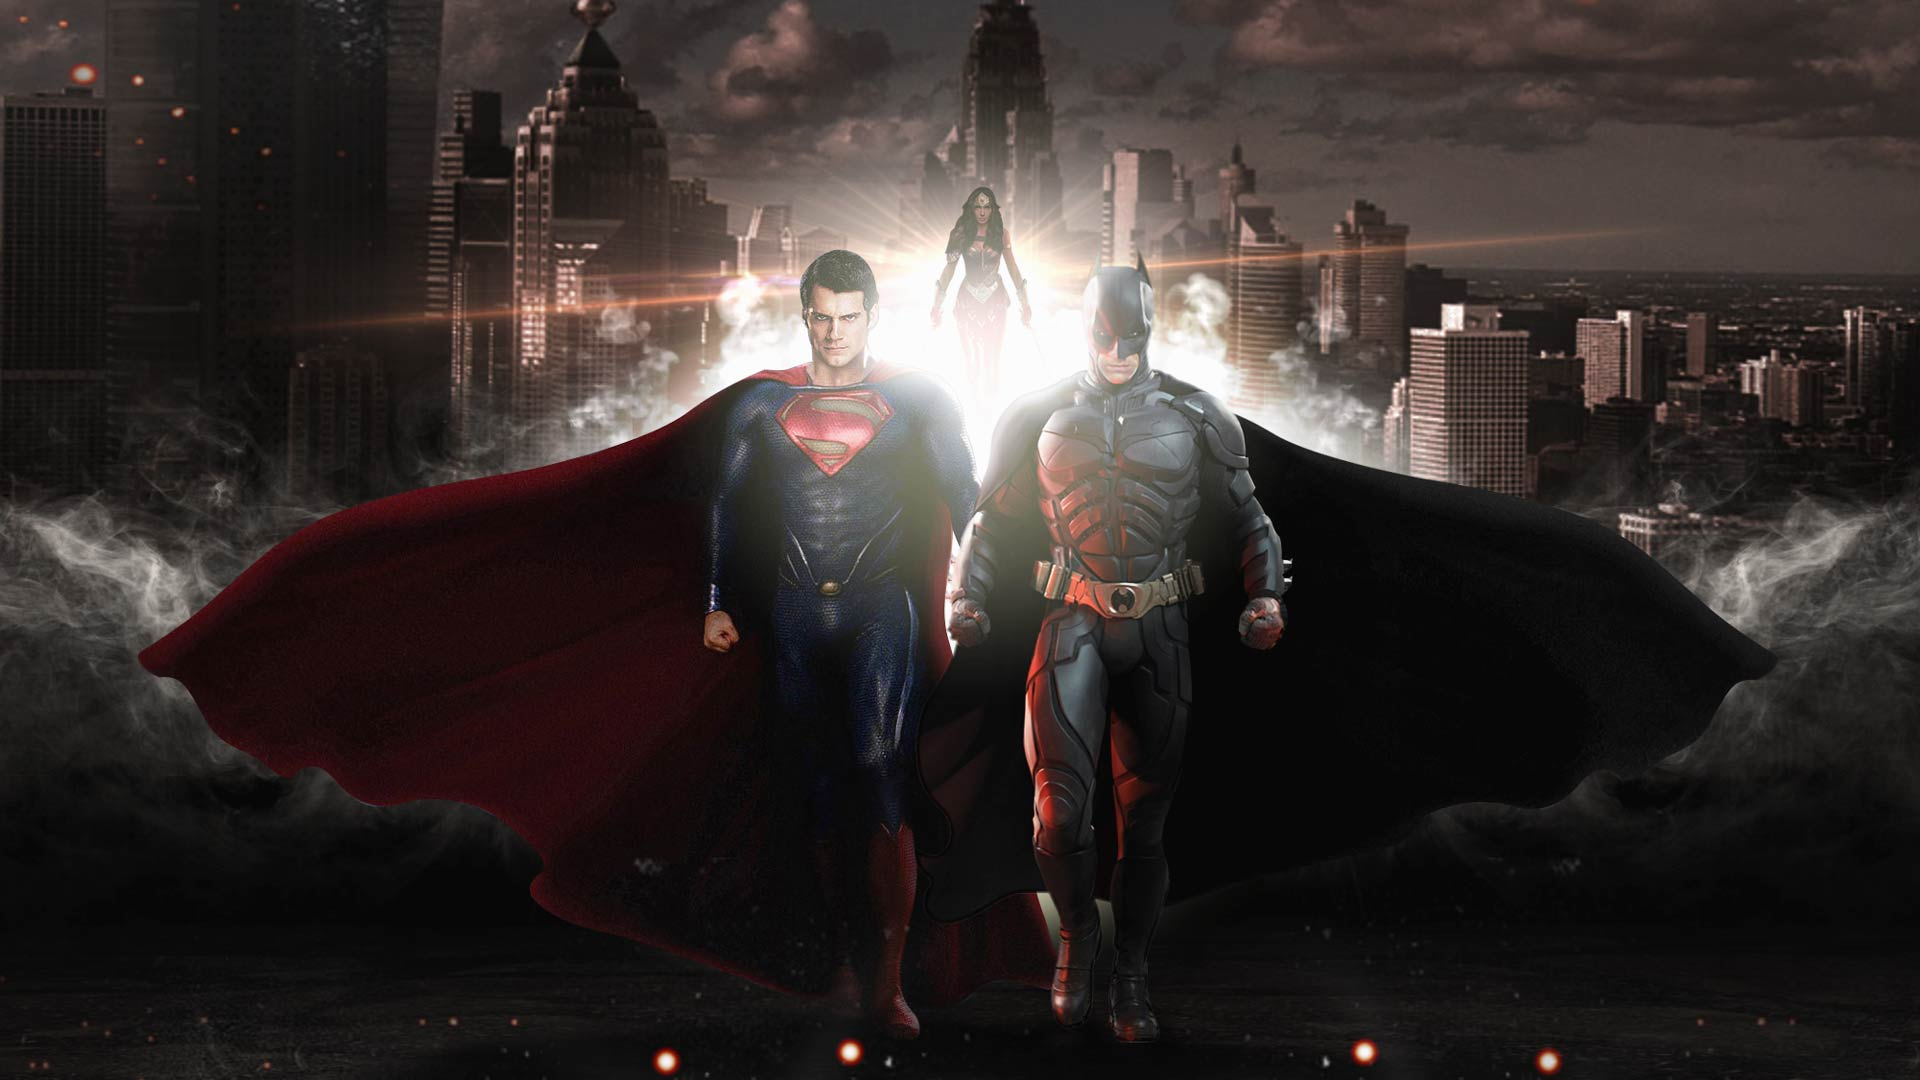 Batman And Superman Wallpaper Background HD Download 1920x1080